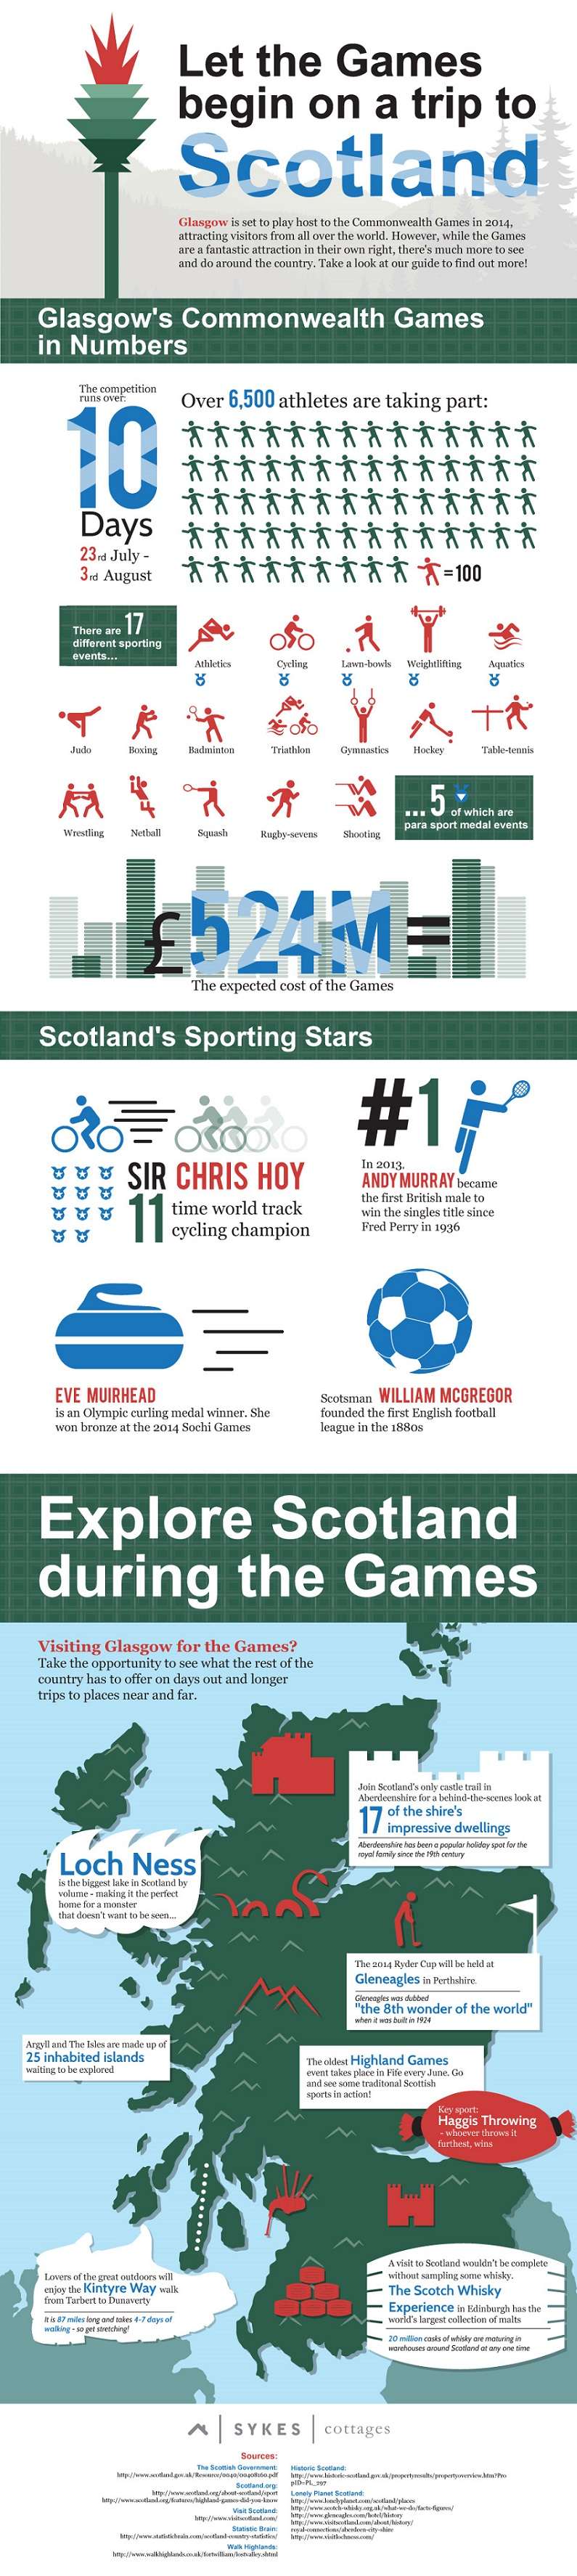 Explore Scotland during the Commonwealth Games